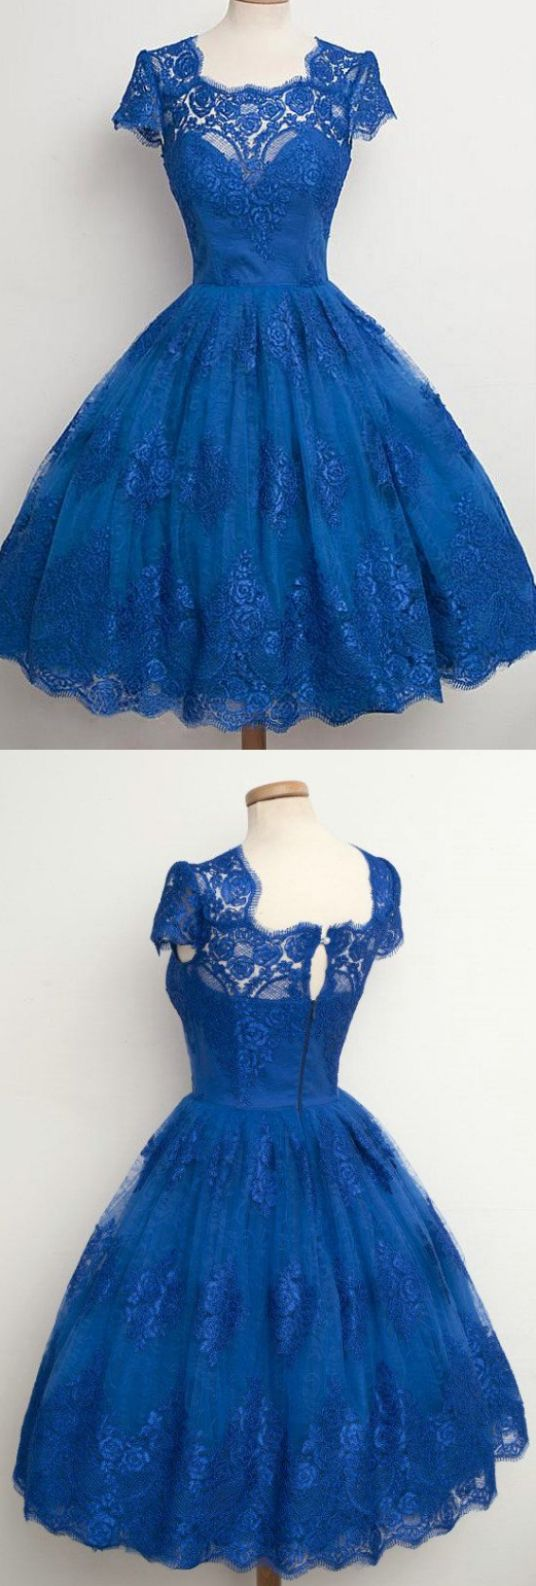 Knee length prom dresses blue kneelength prom dresses kneelength